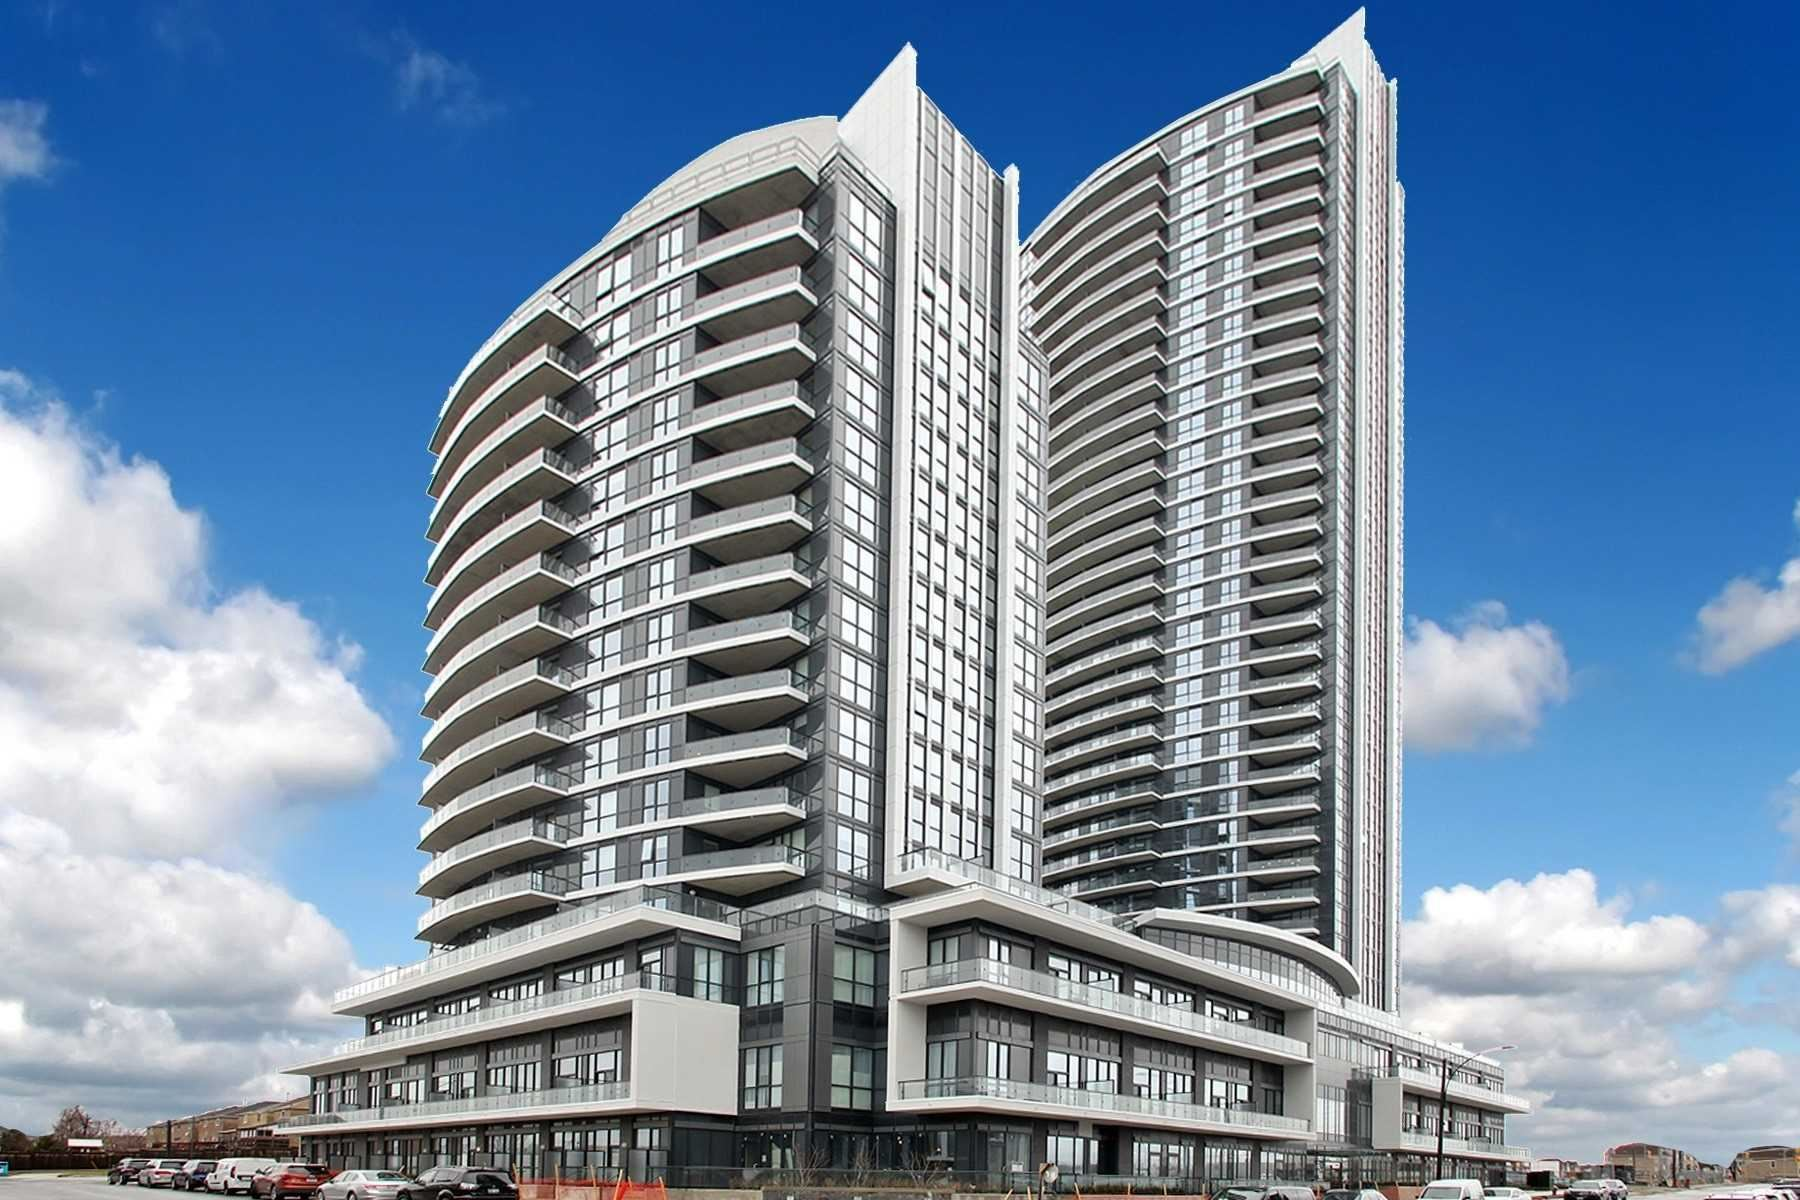 35 Watergarden Dr #720, Mississauga, ON L5R1B2 - MLS#: W5408753